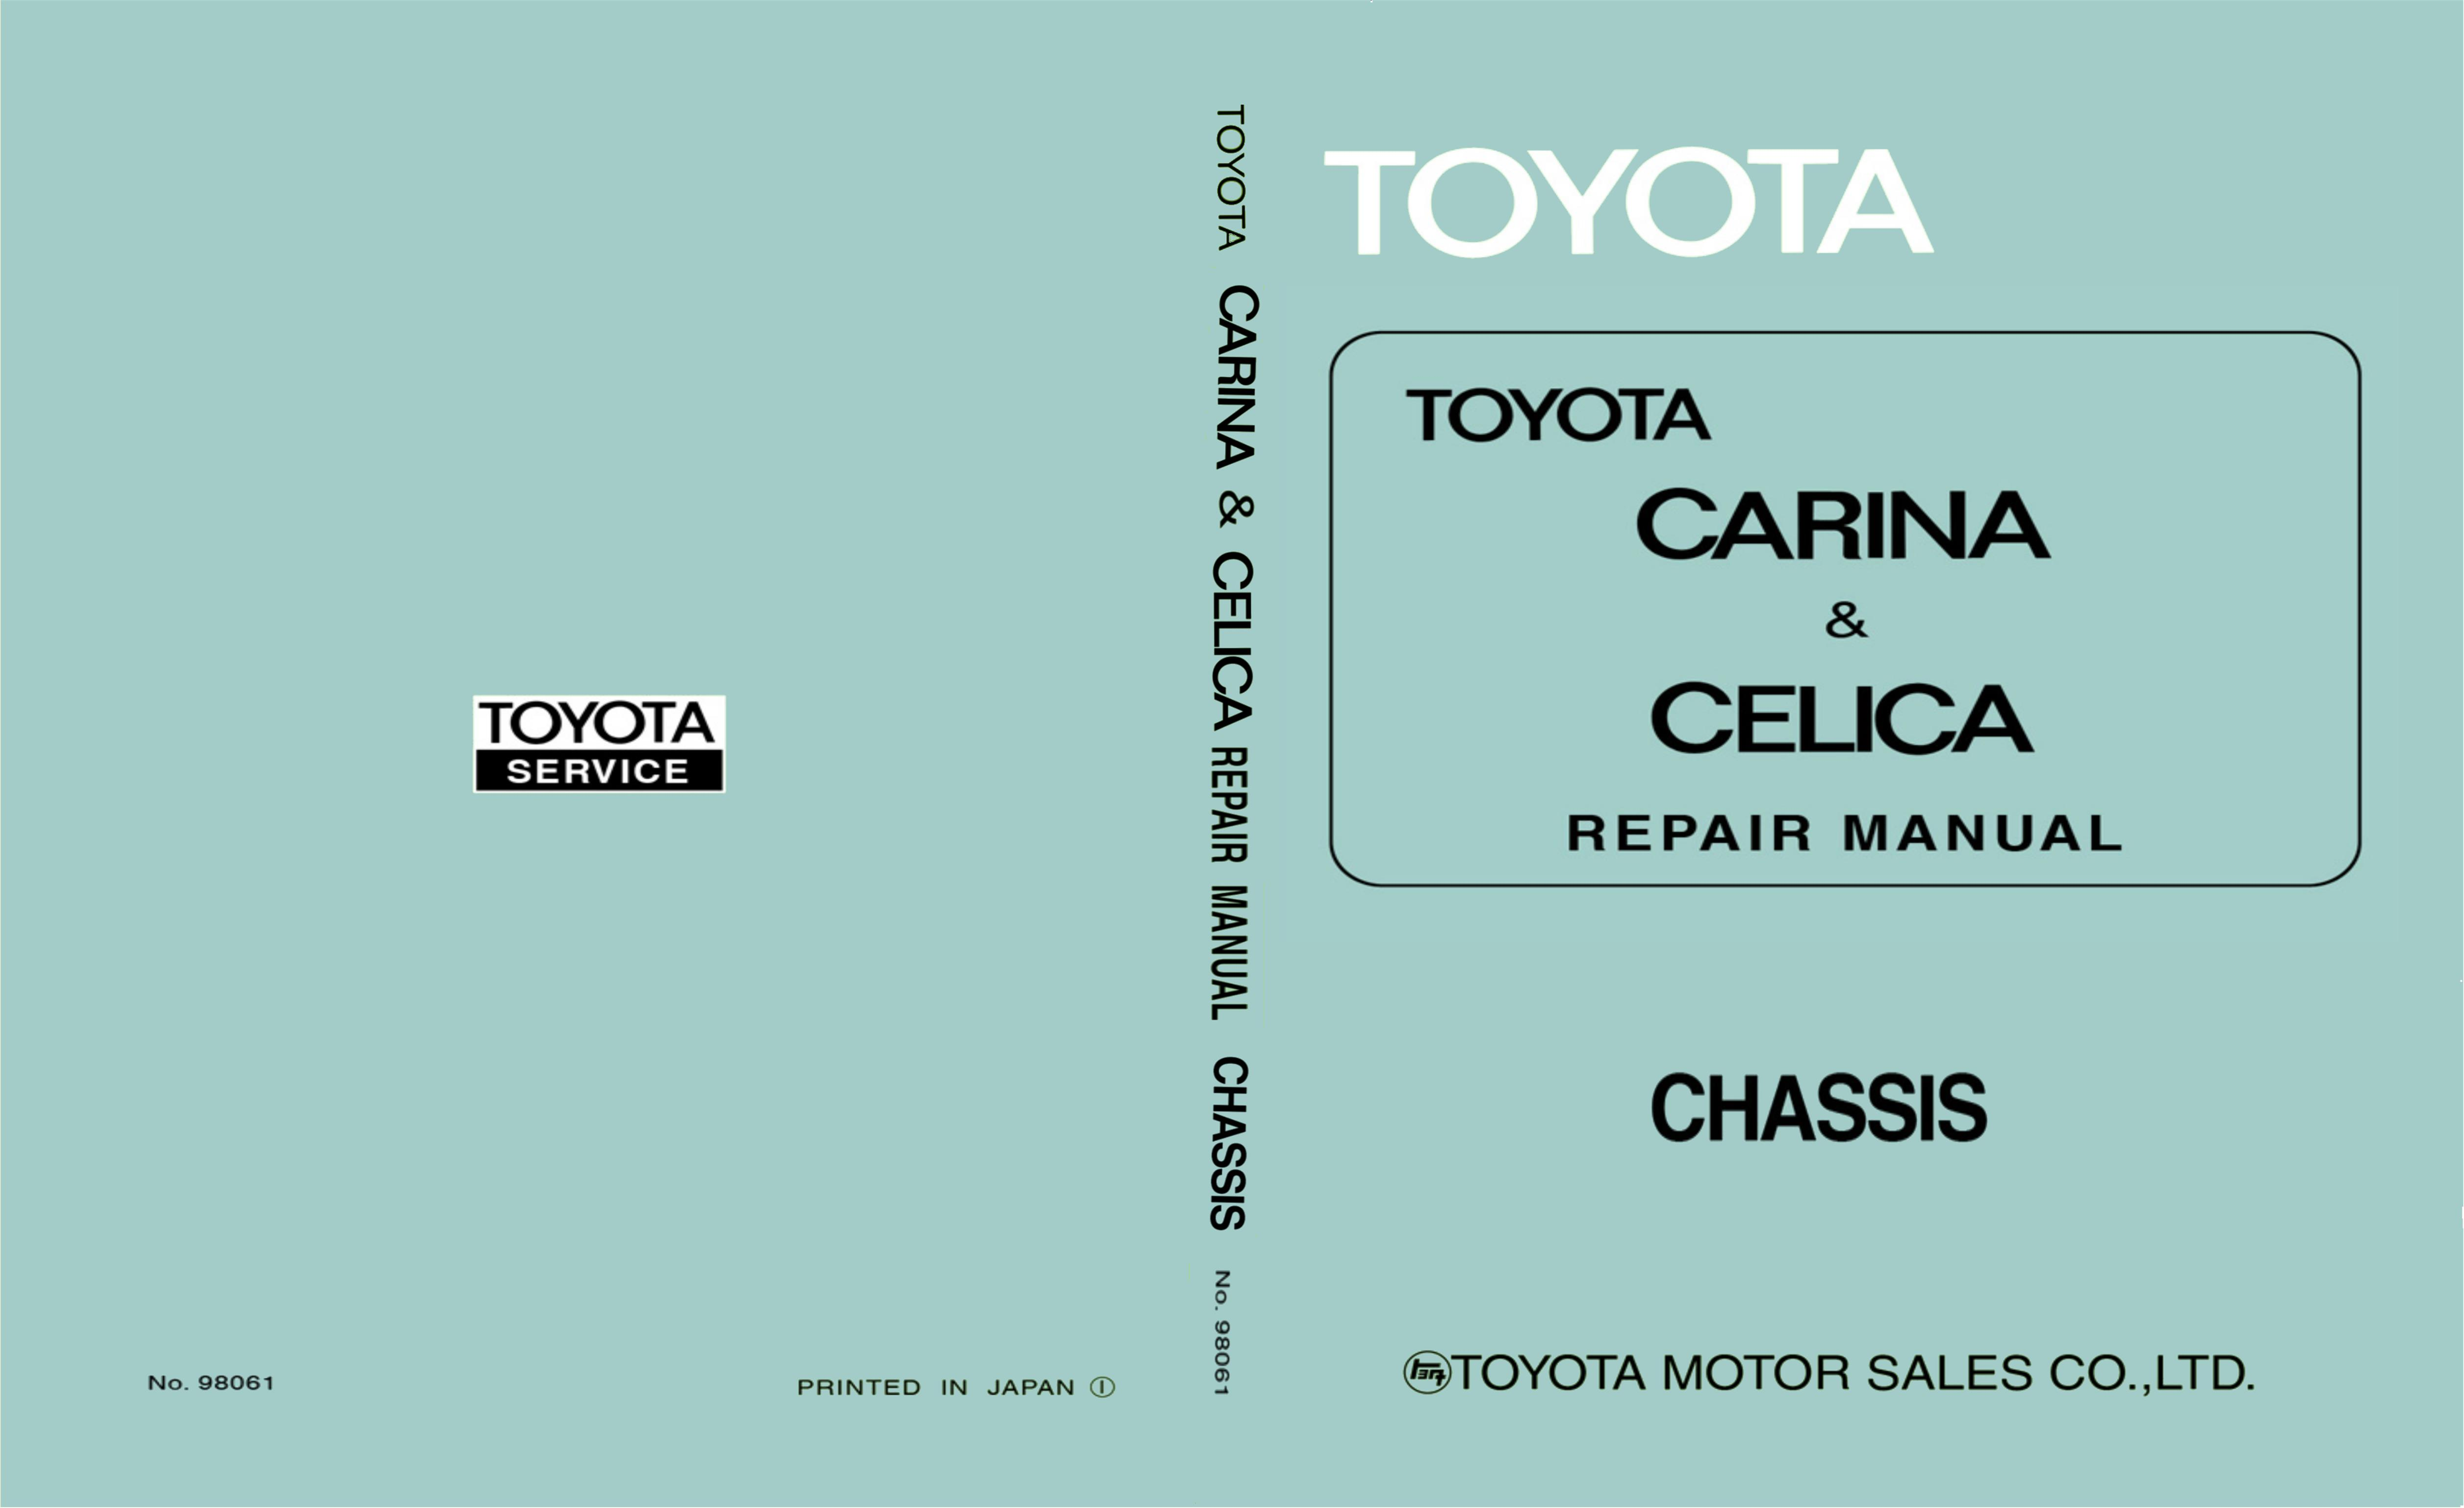 1971 toyota celica carina chassis manual by clint weis 1600 1971 toyota celica carina chassis manual cover image fandeluxe Choice Image